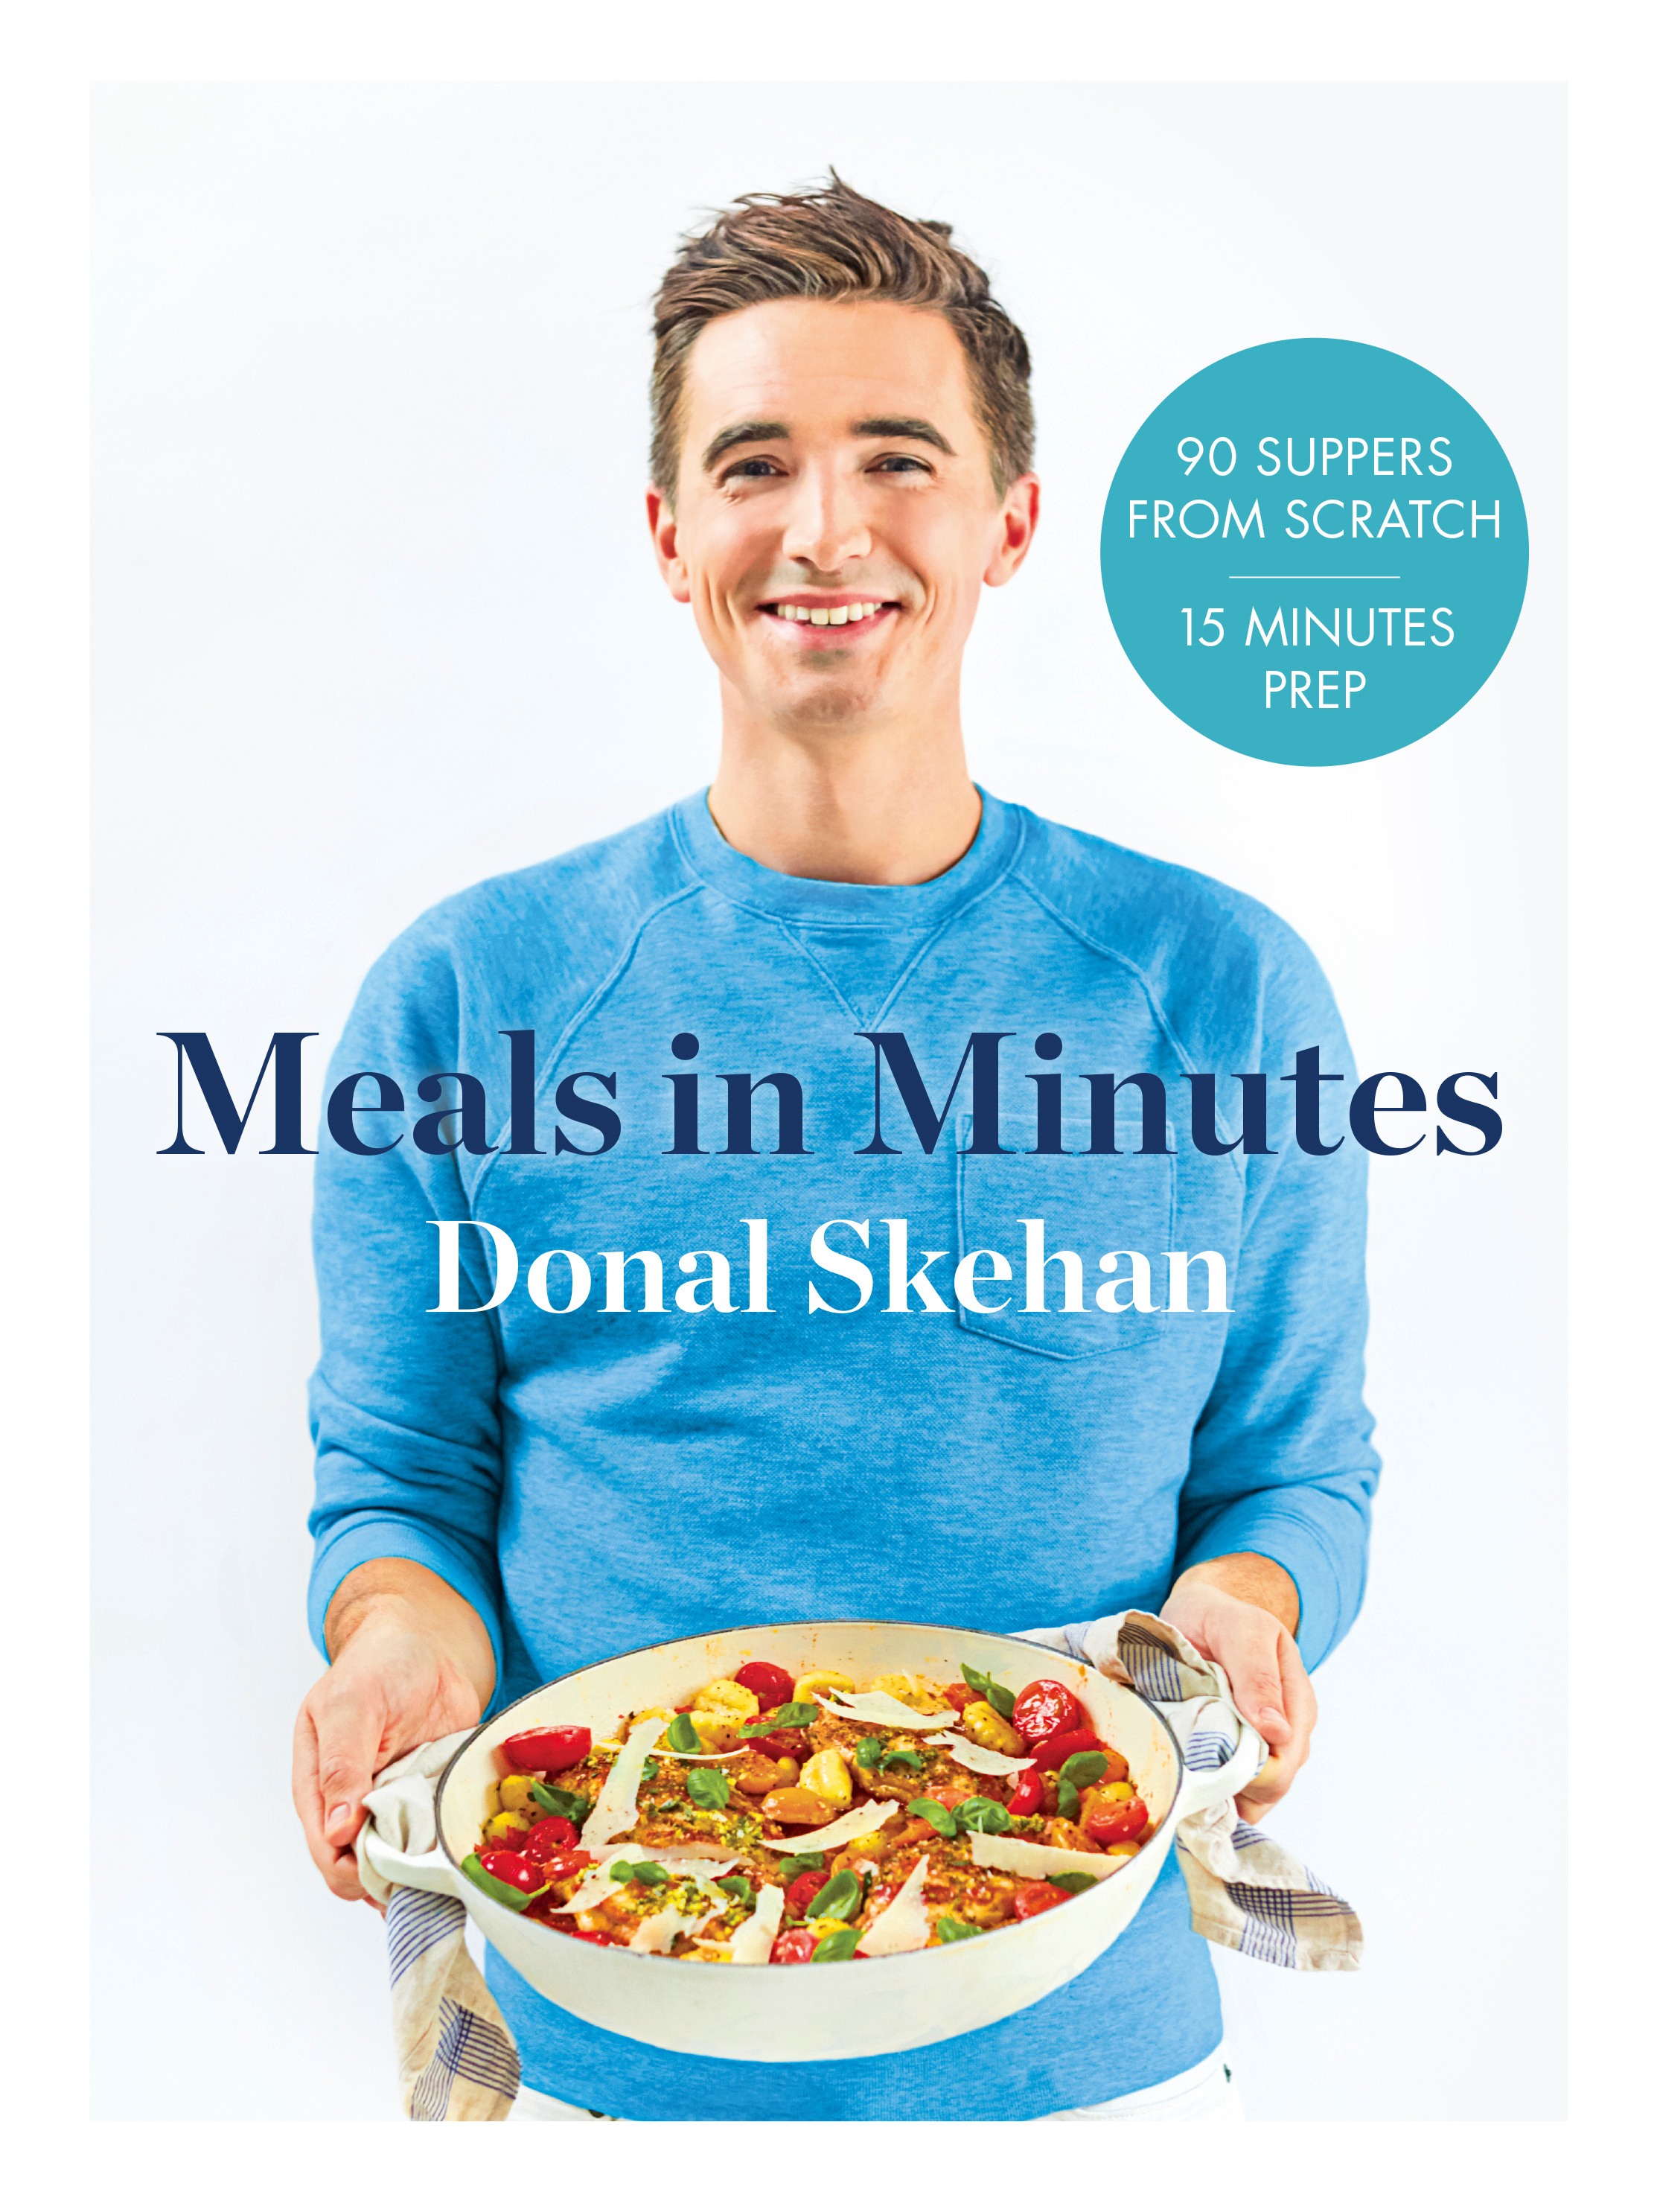 Donal's Meals in Minutes: No-fuss fast food